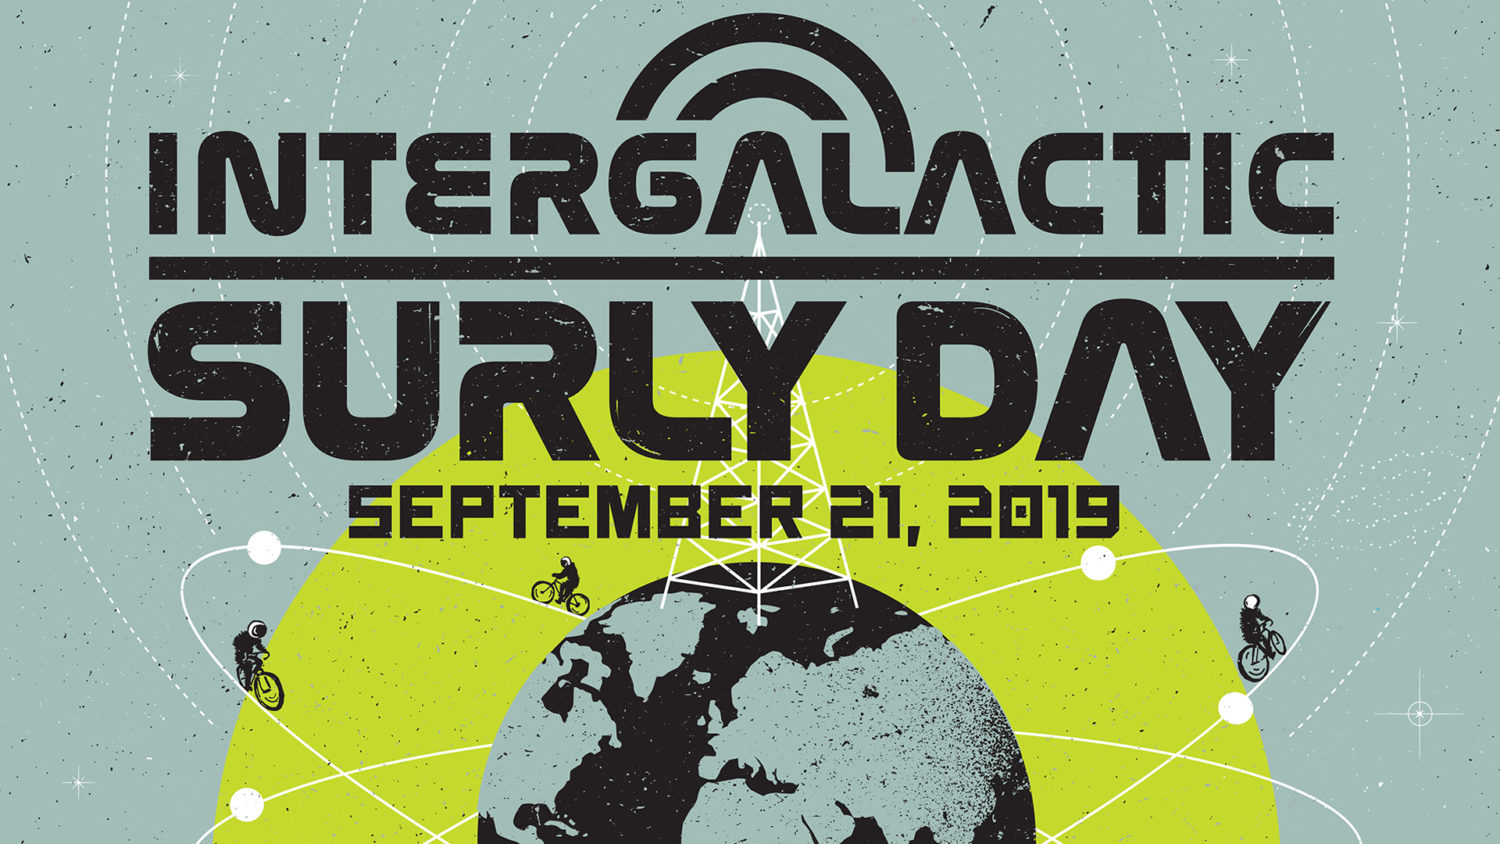 Intergalactic Surly Day By Circles